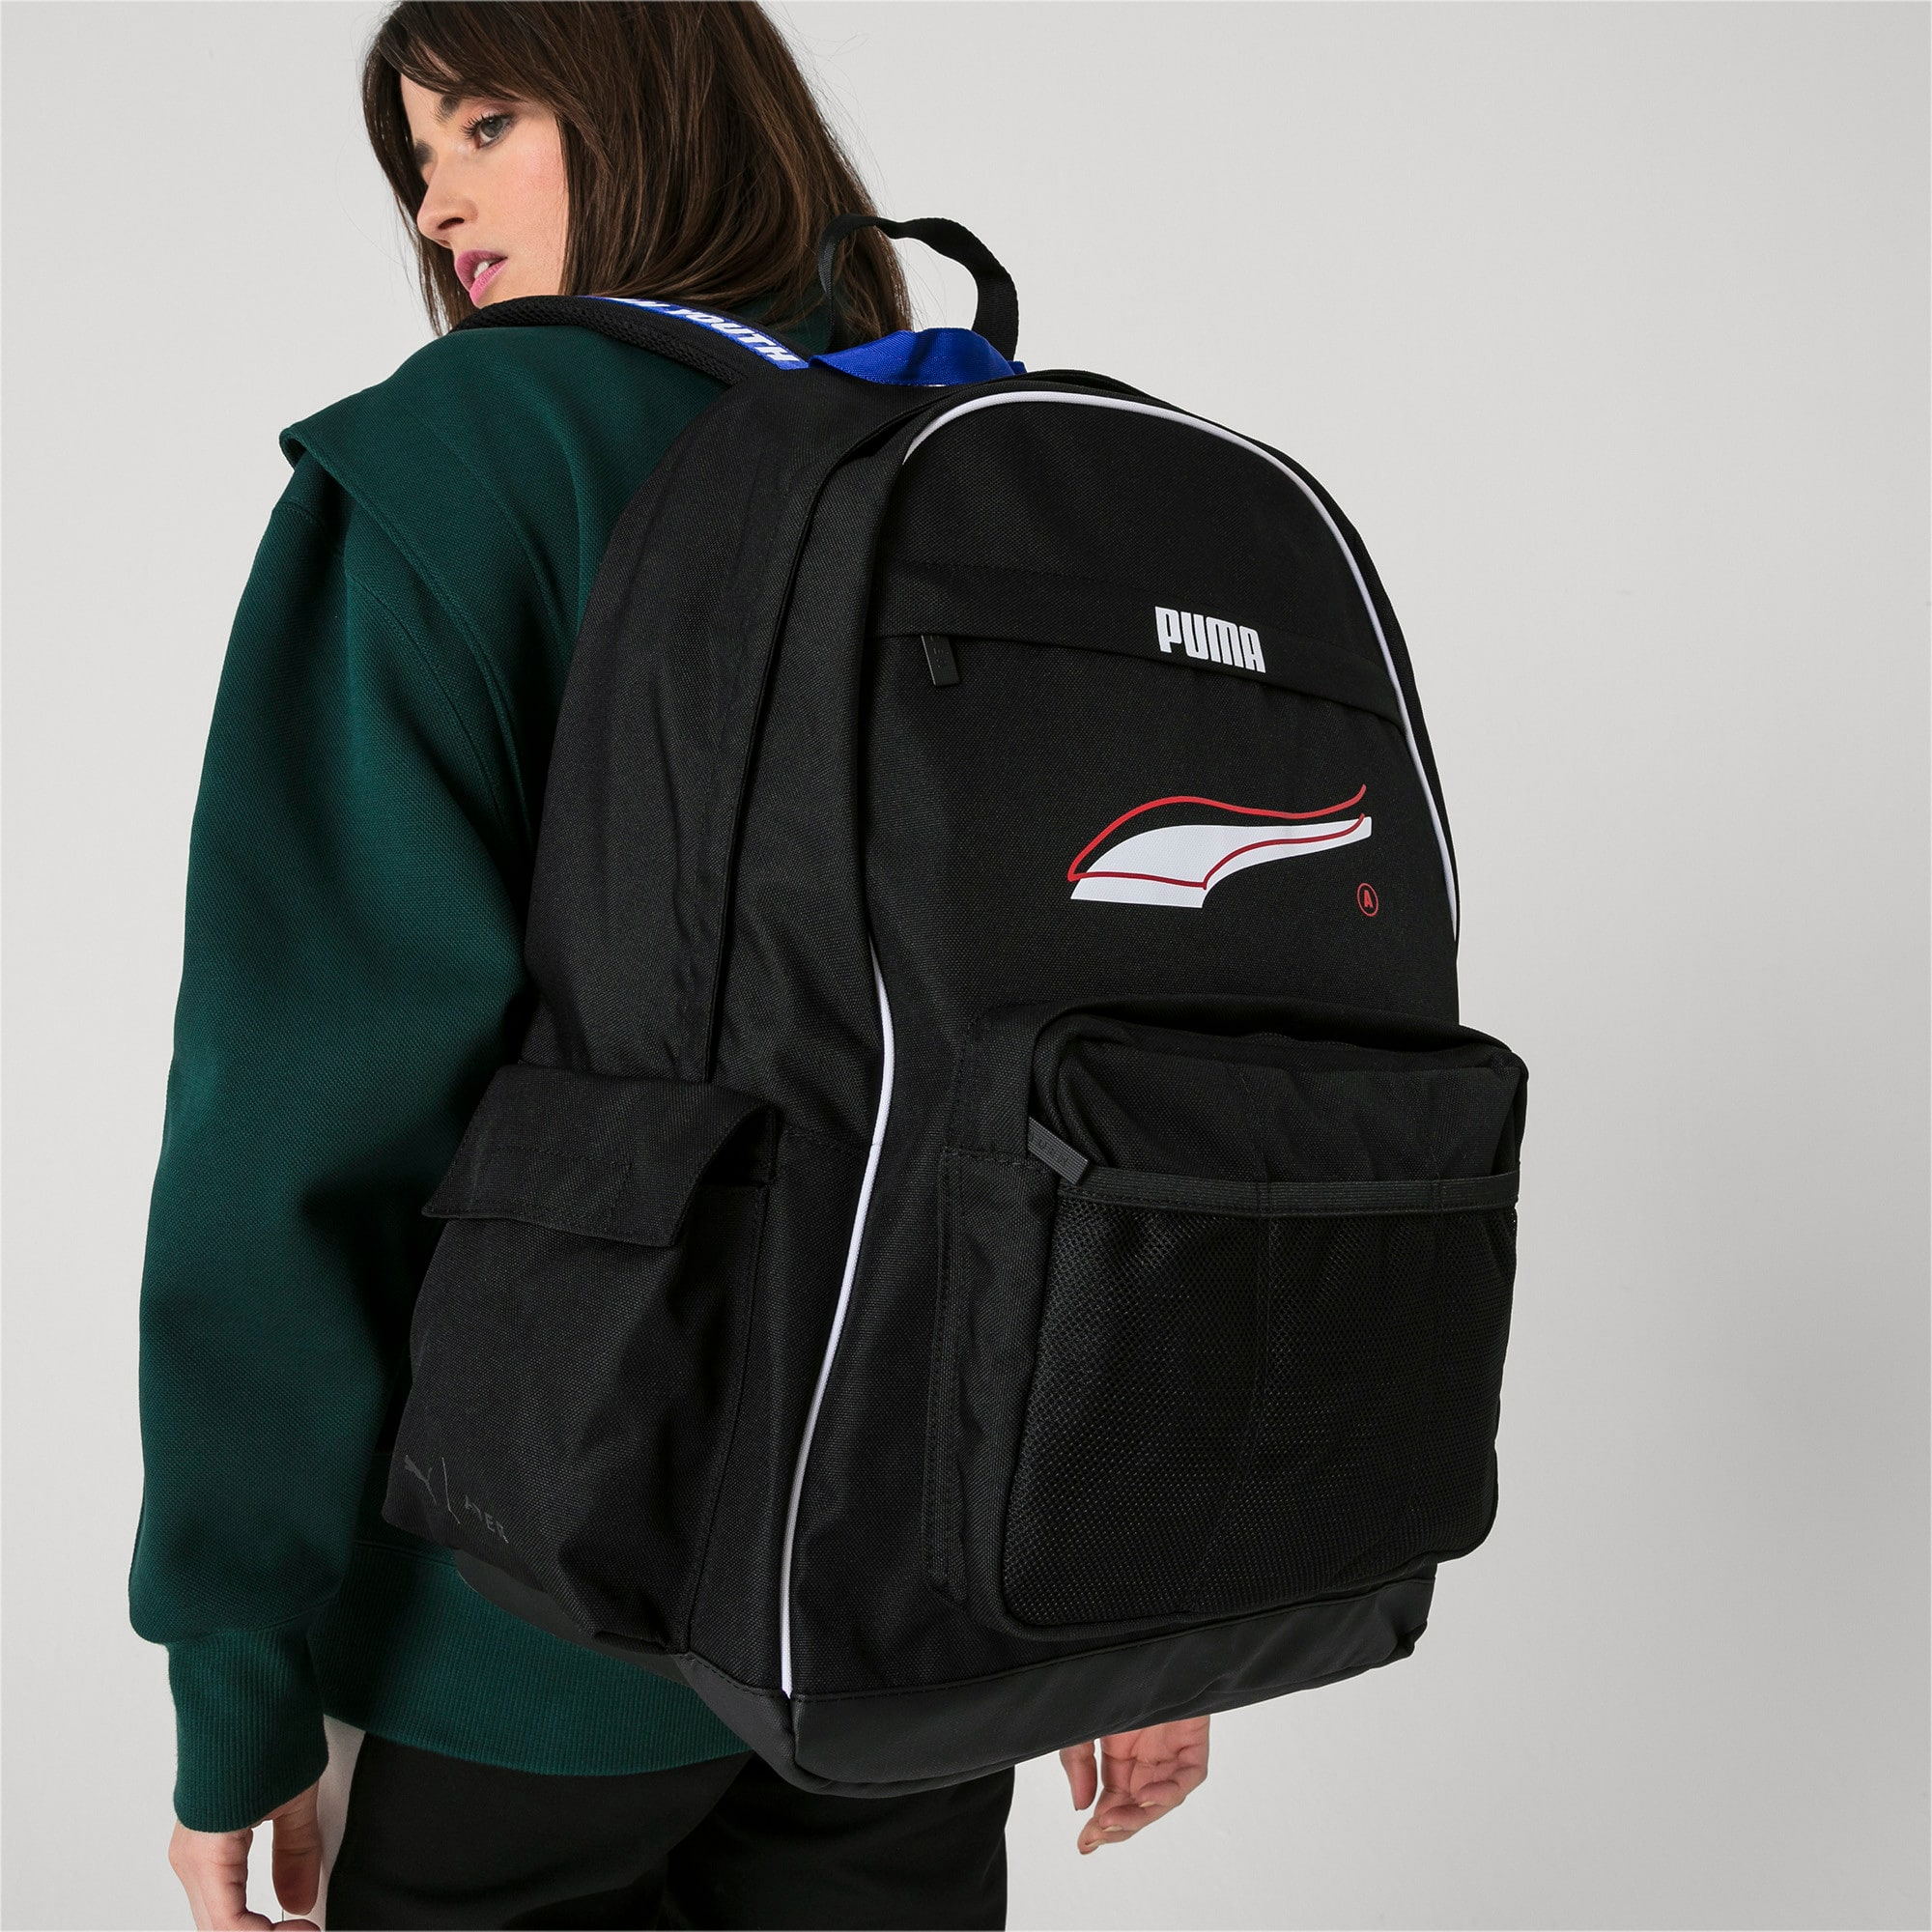 Thumbnail 5 of PUMA x ADER ERROR Rucksack, Puma Black, medium